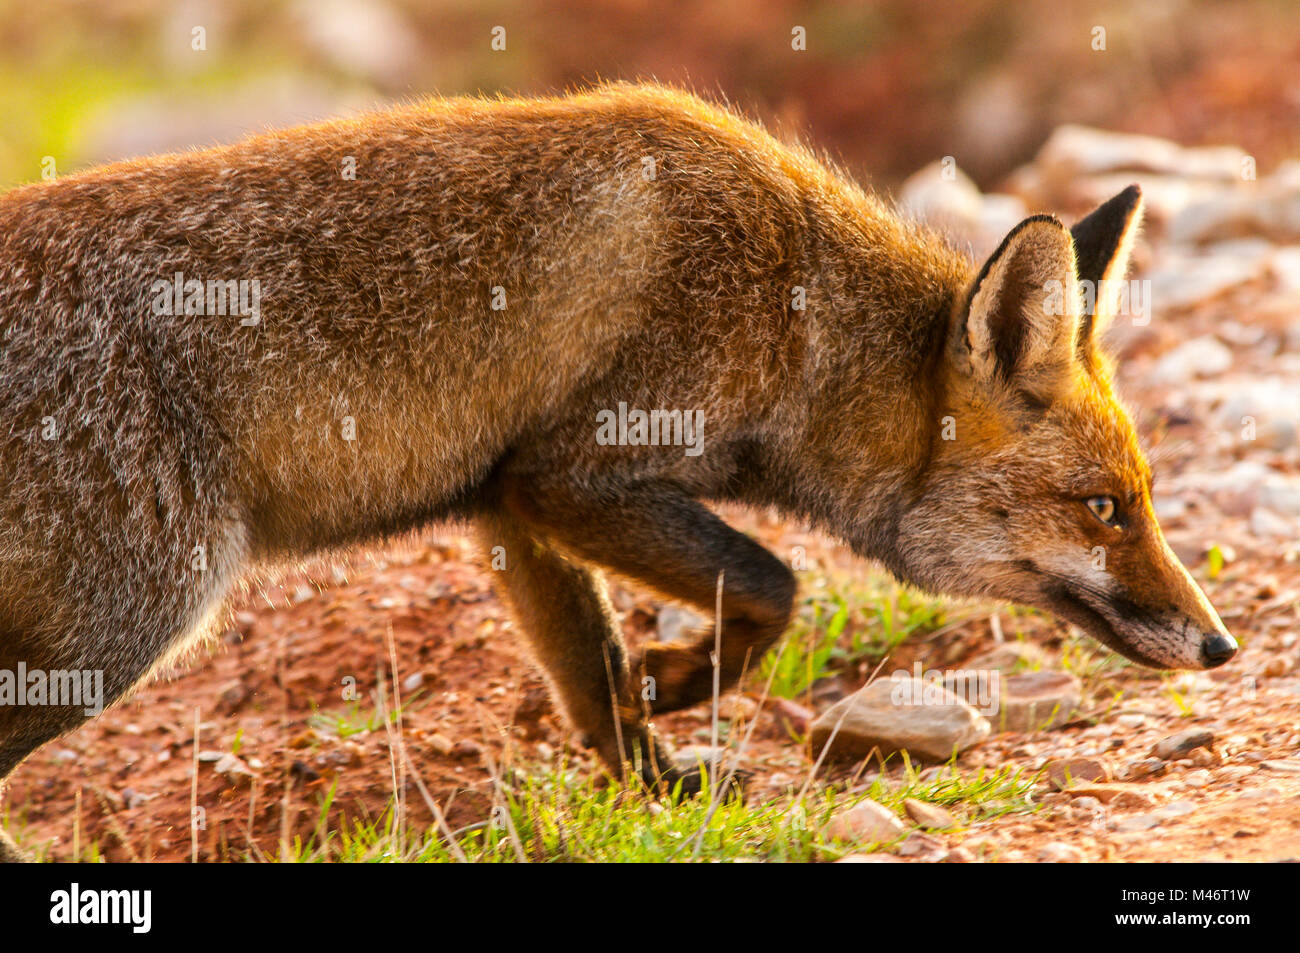 Fox (vulpes vulpes) adult, spanish countryside, southern - Stock Image